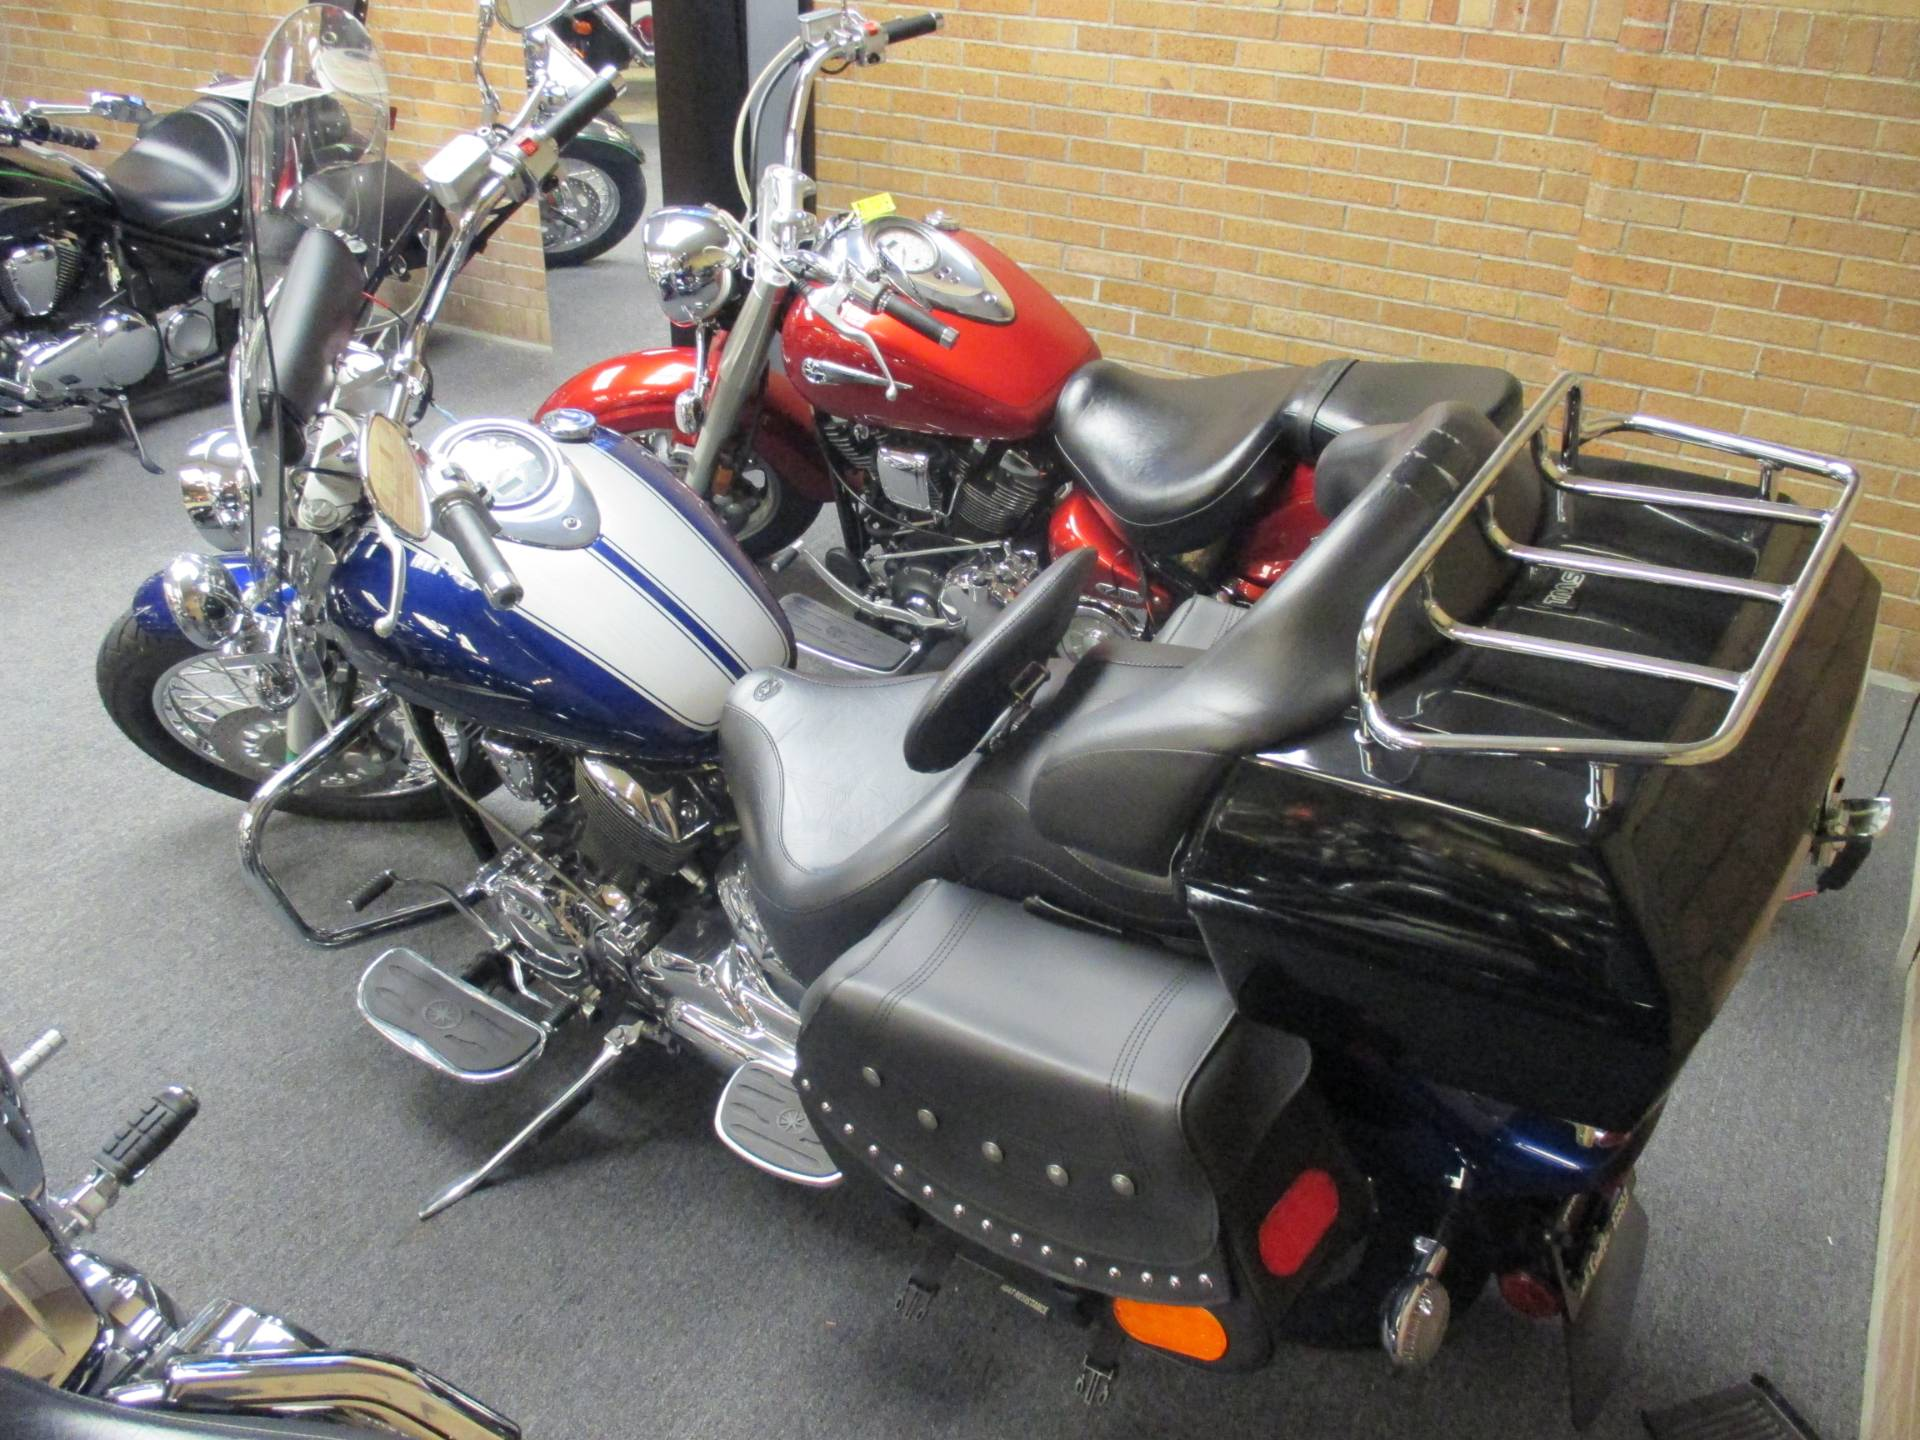 Used 2008 Yamaha V Star® 1100 Classic Motorcycles in Tarentum, PA ...